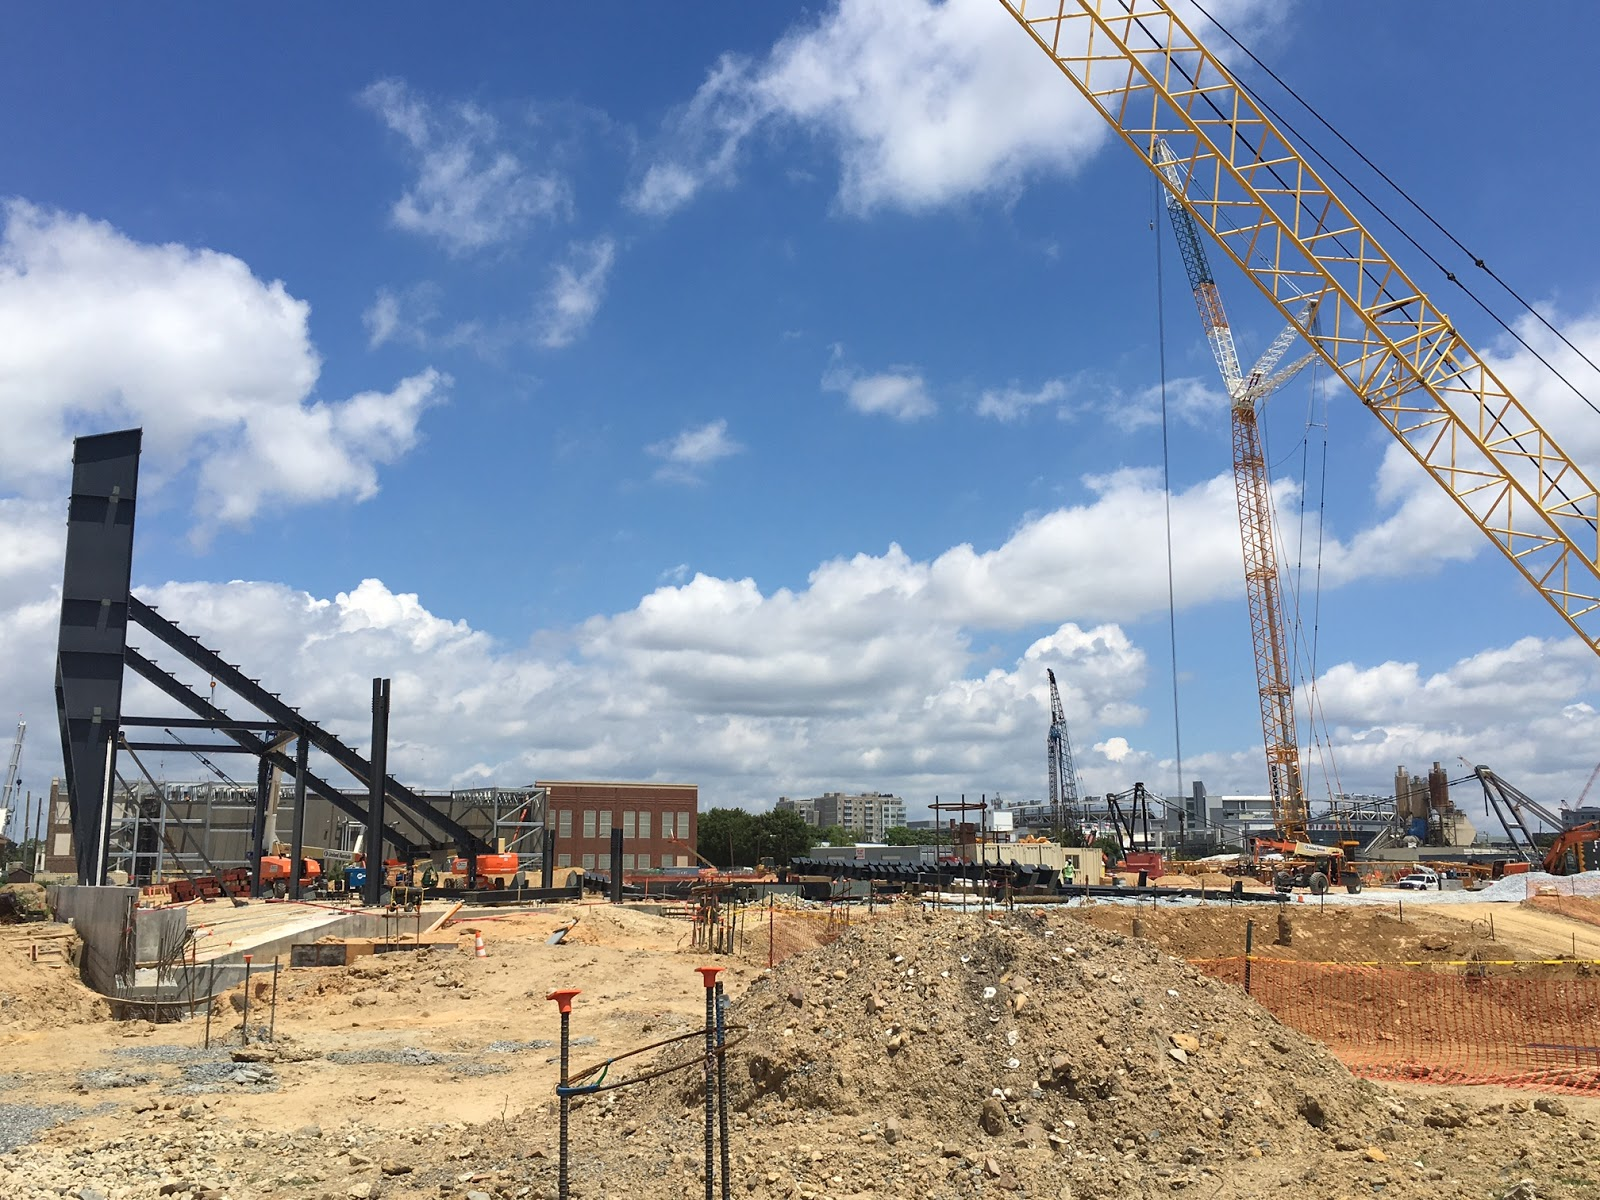 Audi field dc webcam